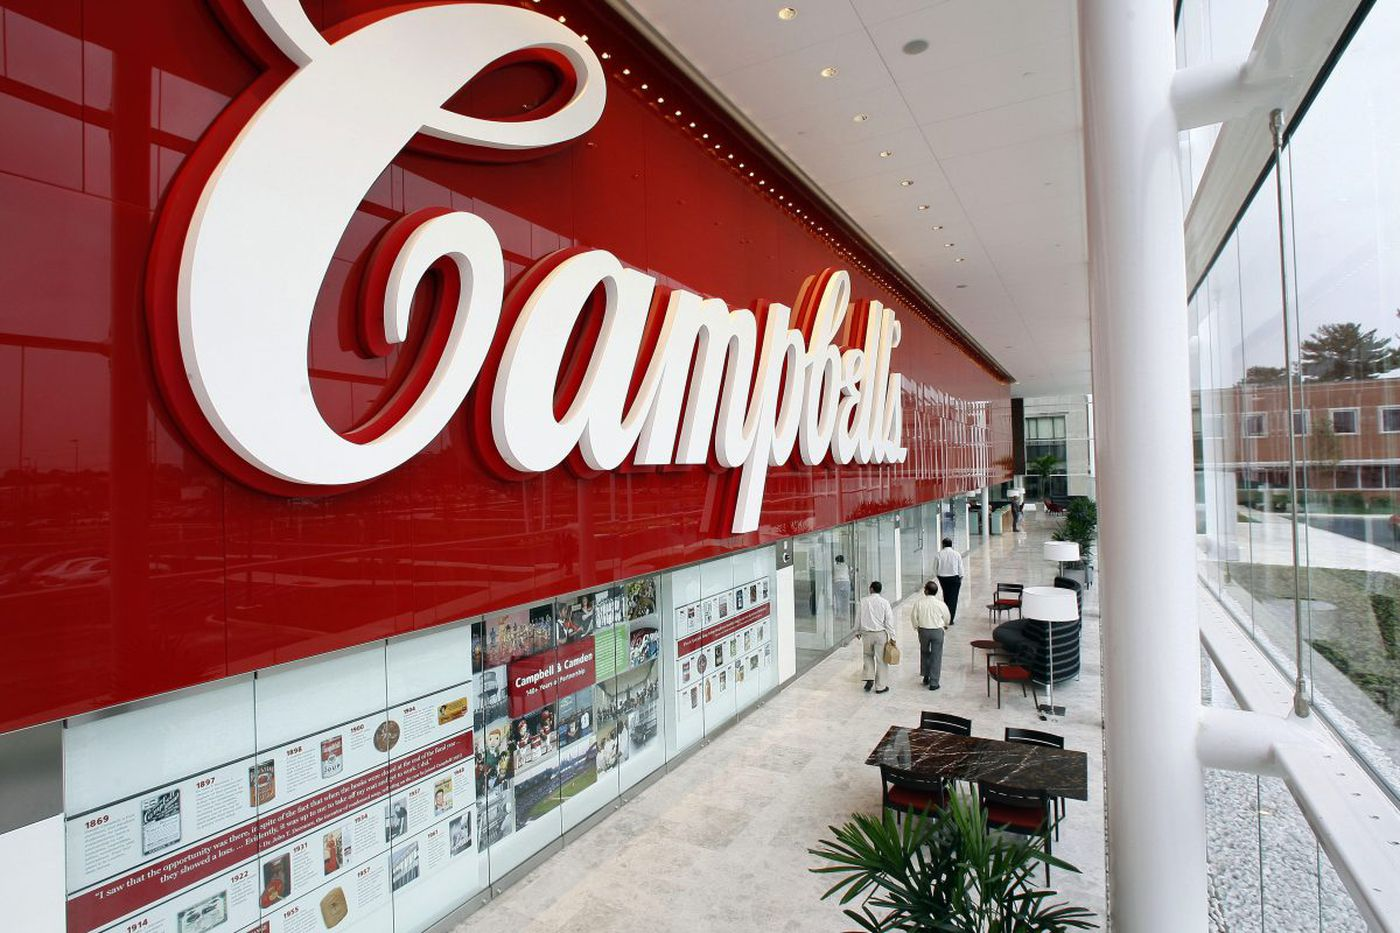 Campbell Soup, Crown Holdings top Philadelphia's 2017 M&A list with December acquisitions